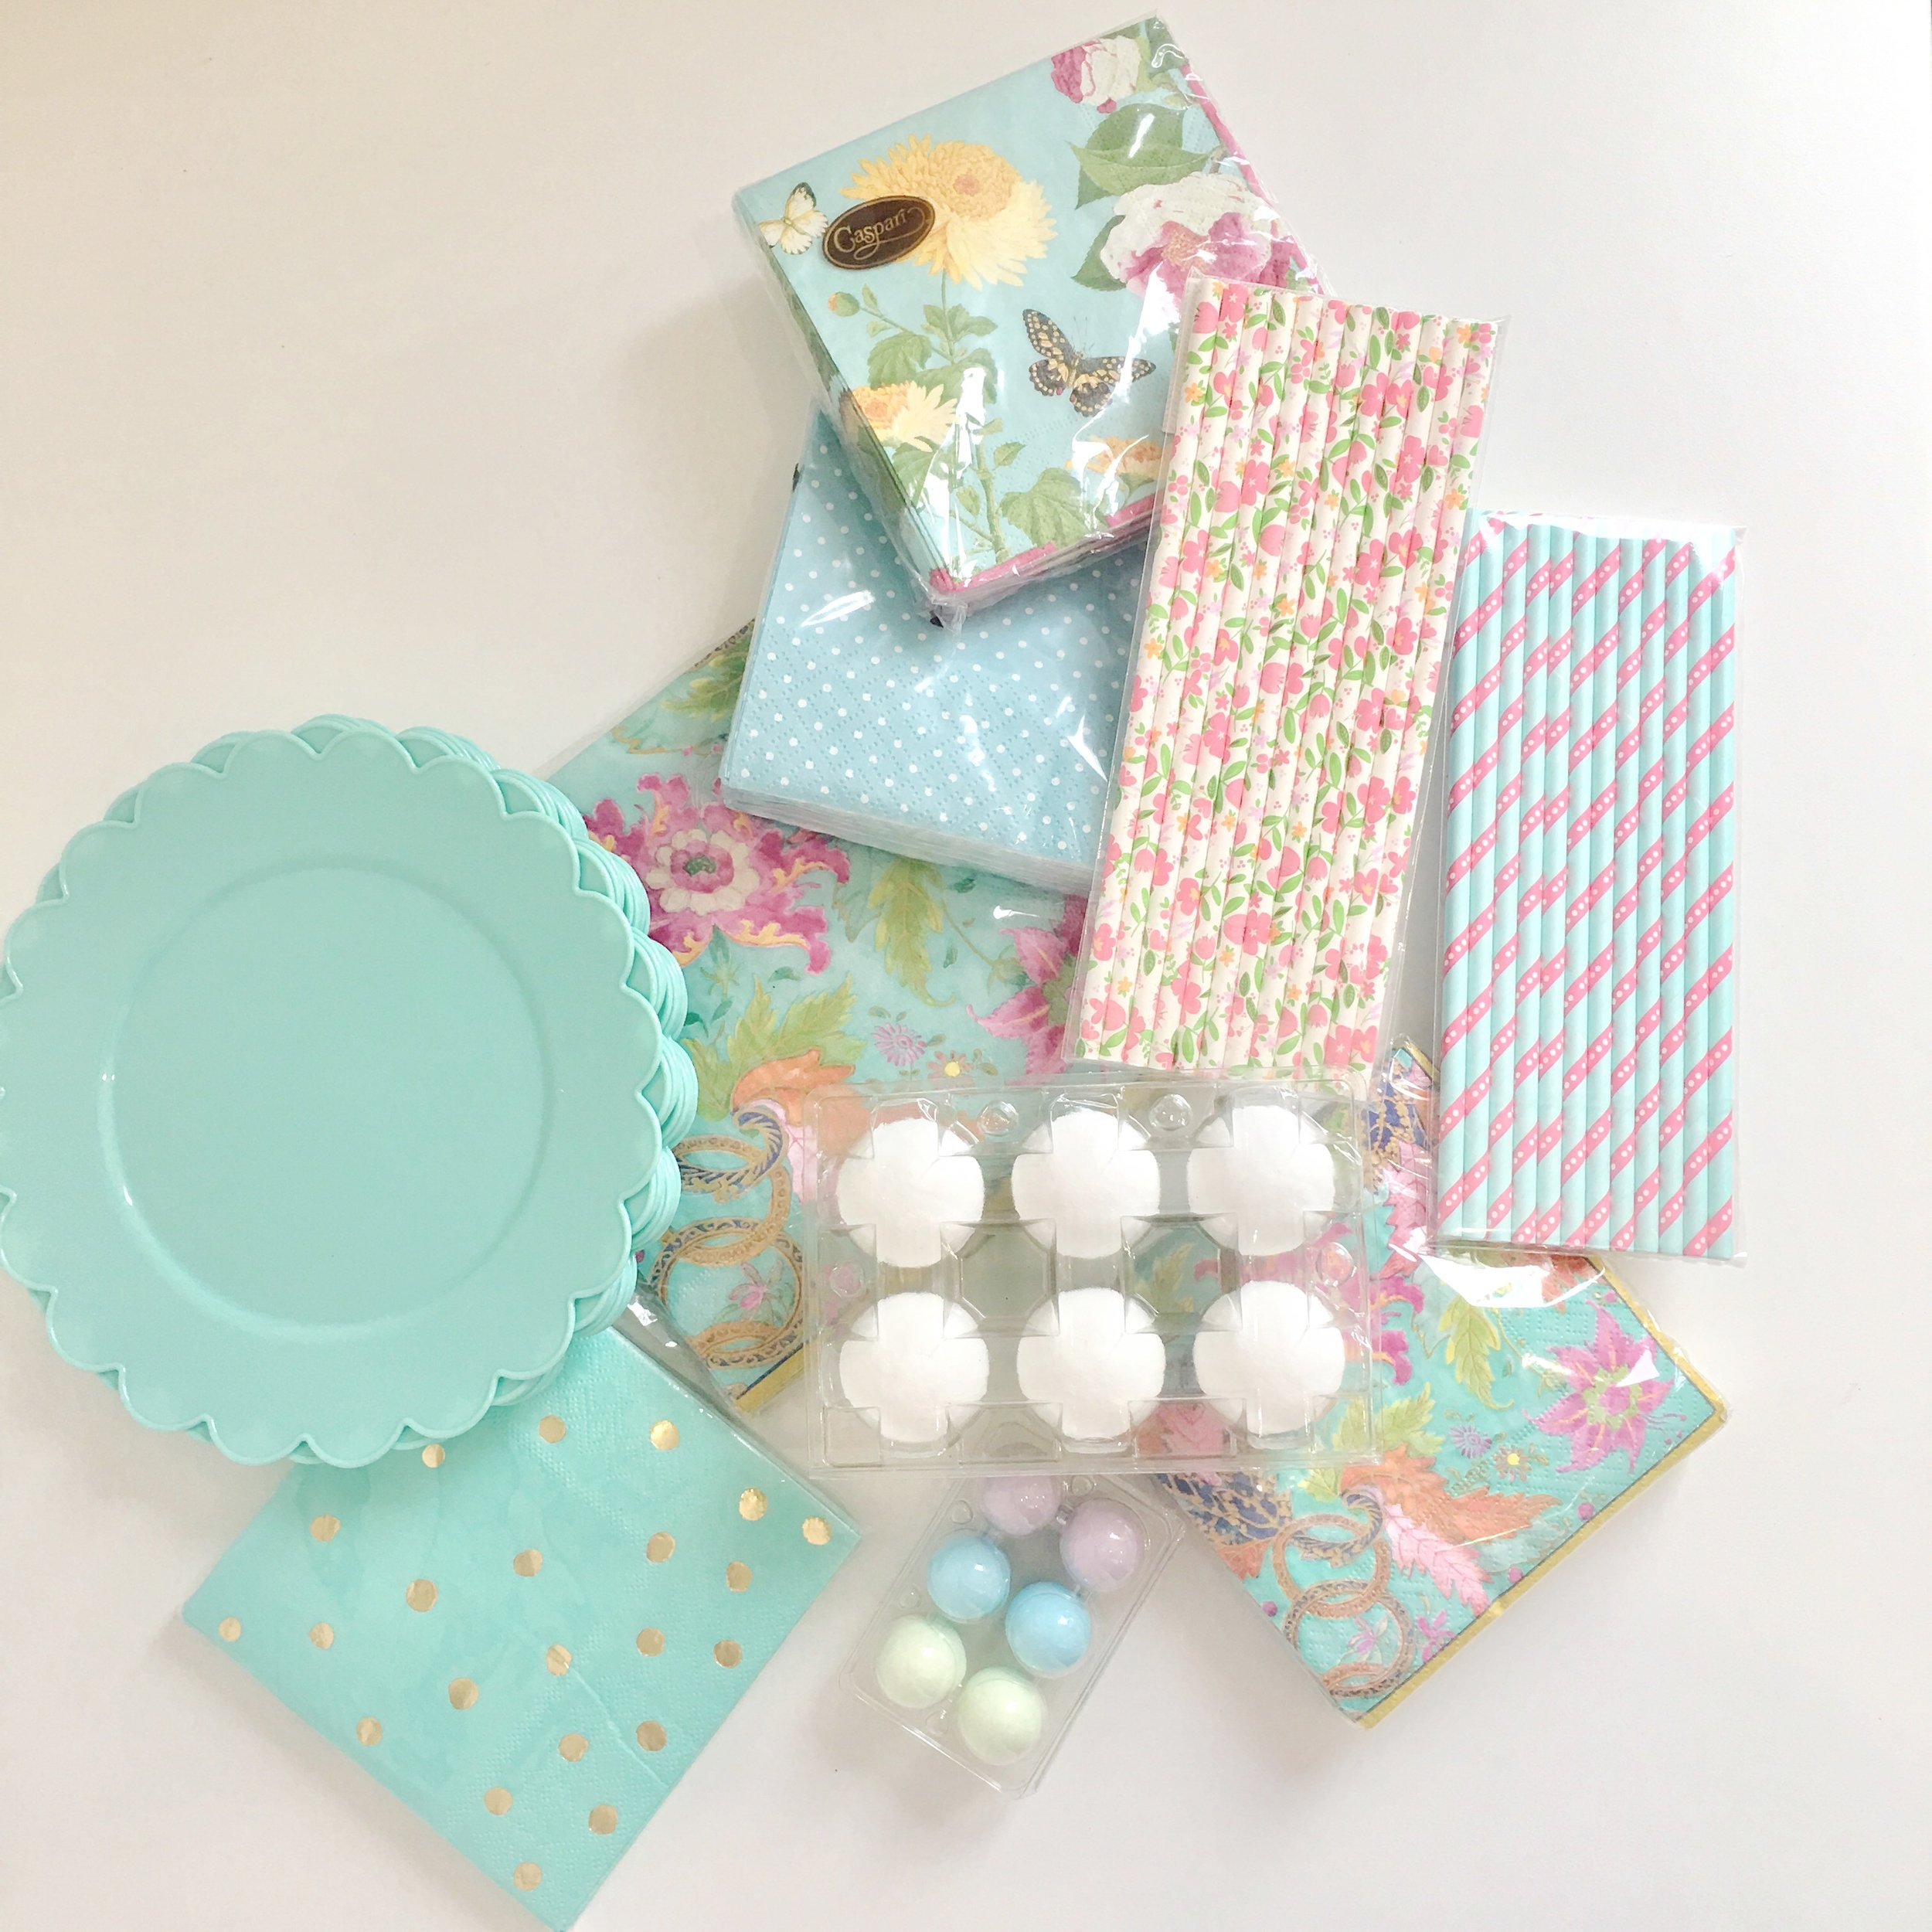 Supplies for Easter Table Settings